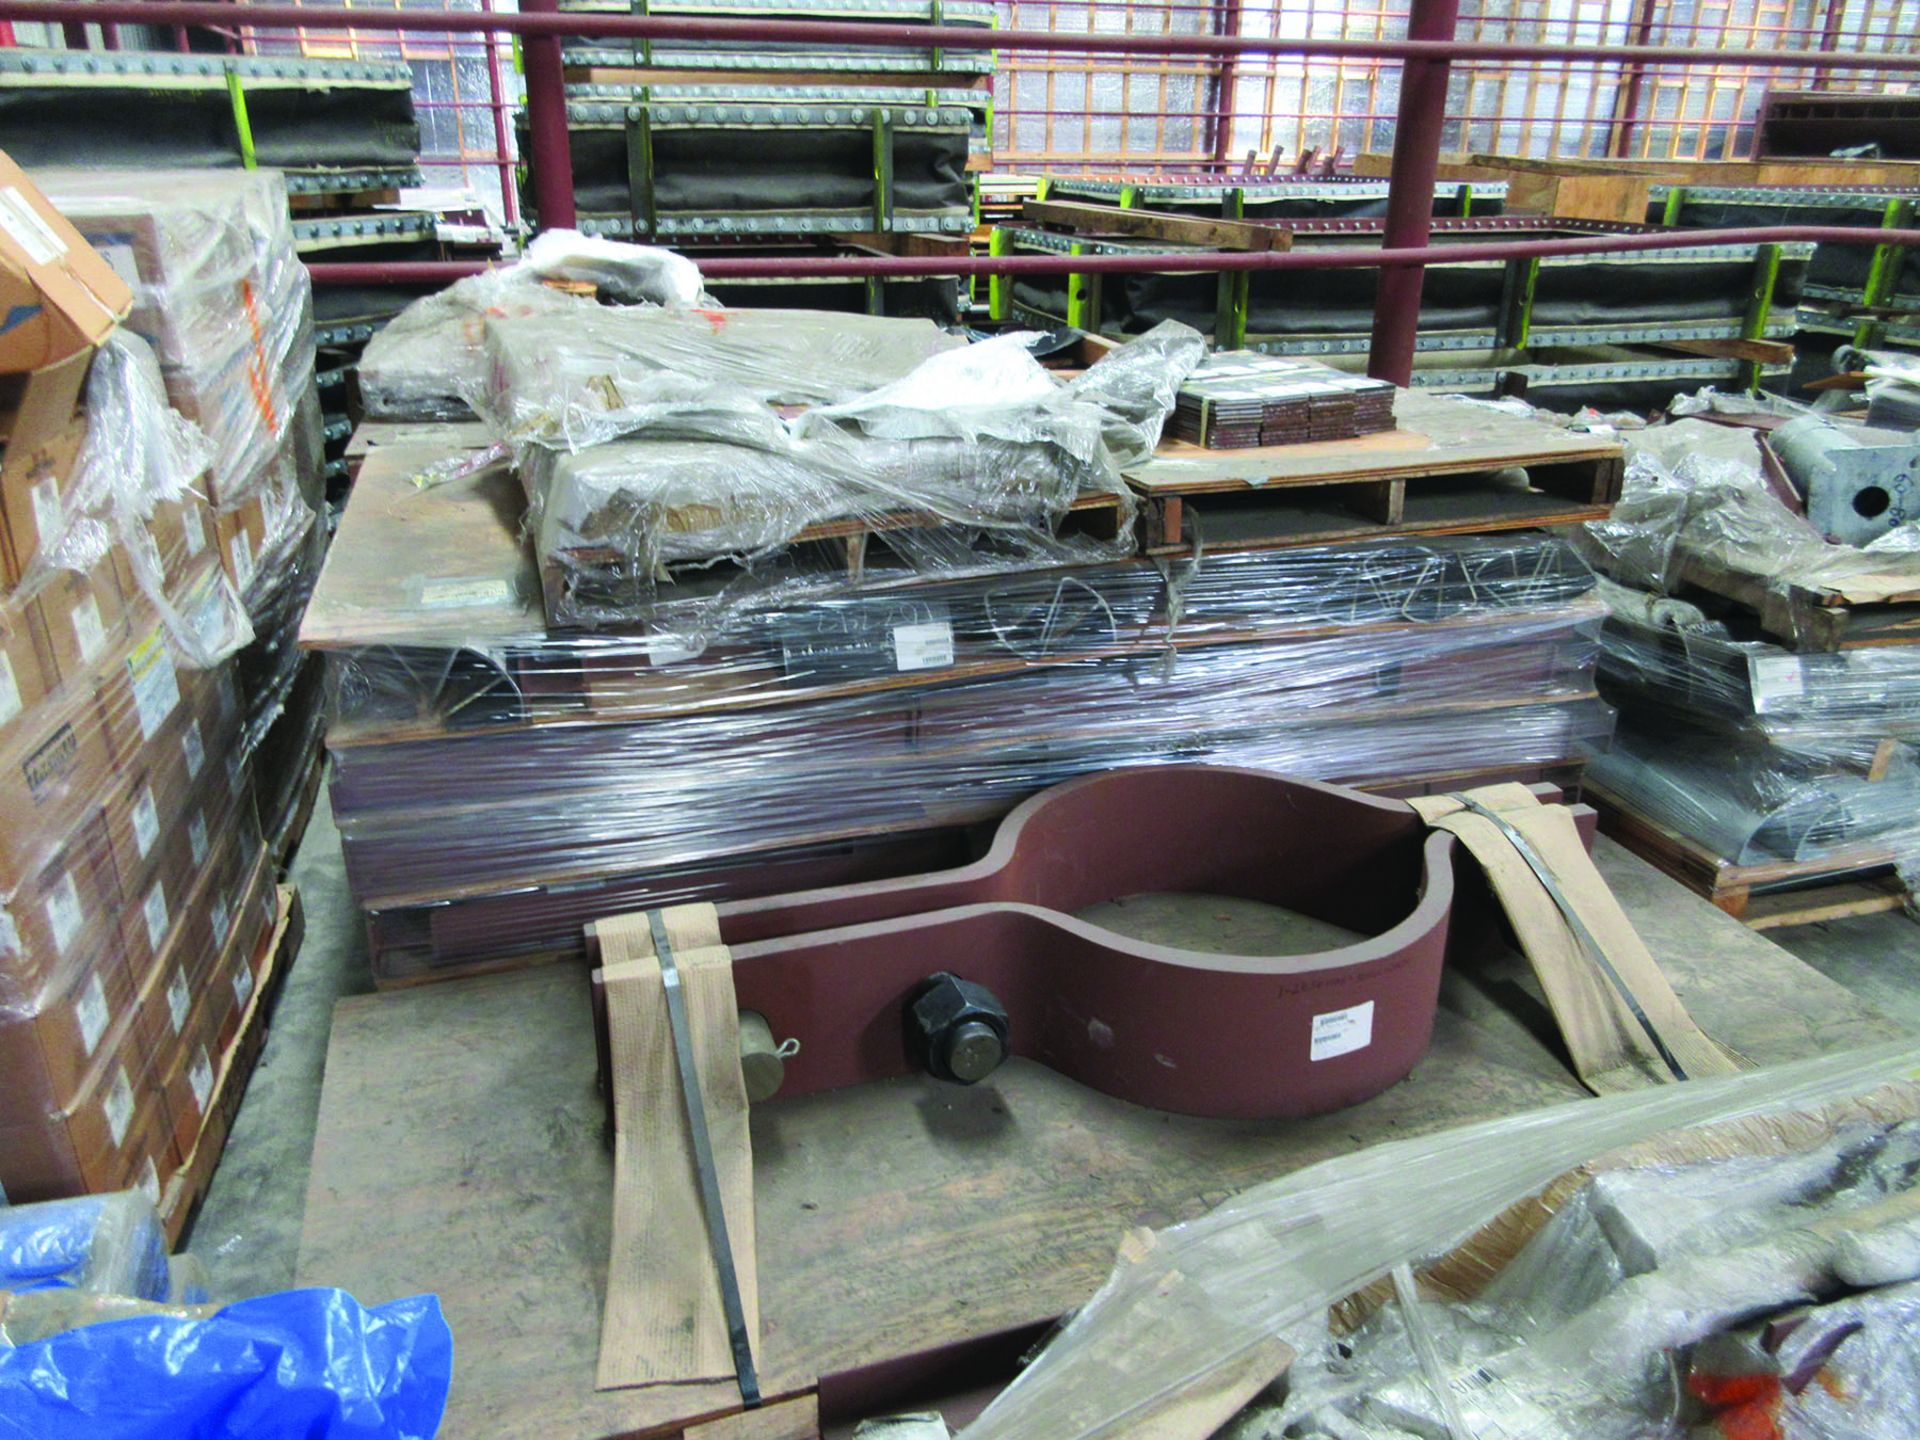 ASSORTED STEEL: PLATES, BEAMS, ROOF/SIDING SUPER RIB CLOSURES, BRACKETS, SPRING CANS, STEEL BRACING, - Image 6 of 16